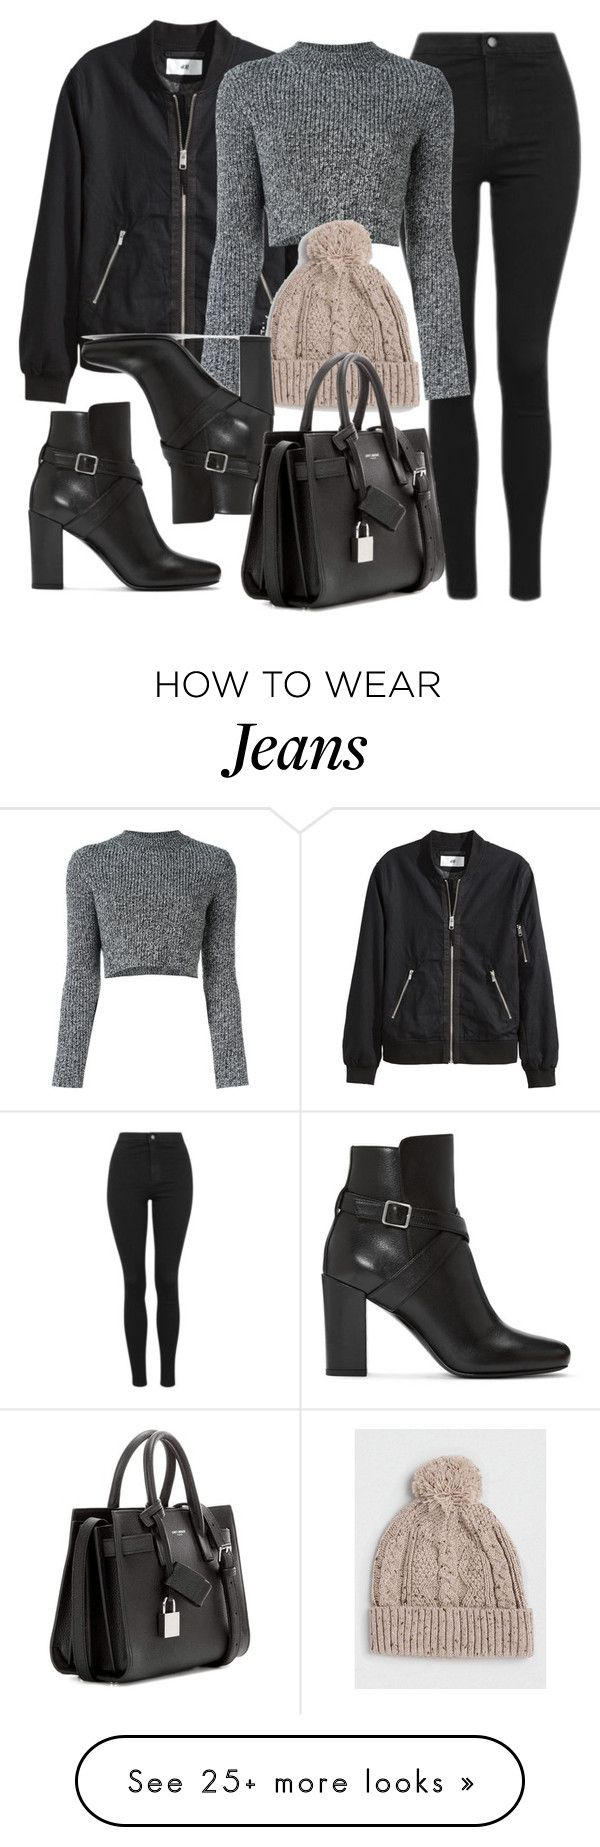 """Style #11584"" by vany-alvarado on Polyvore featuring Topshop, Carven, Topman and Yves Saint Laurent"